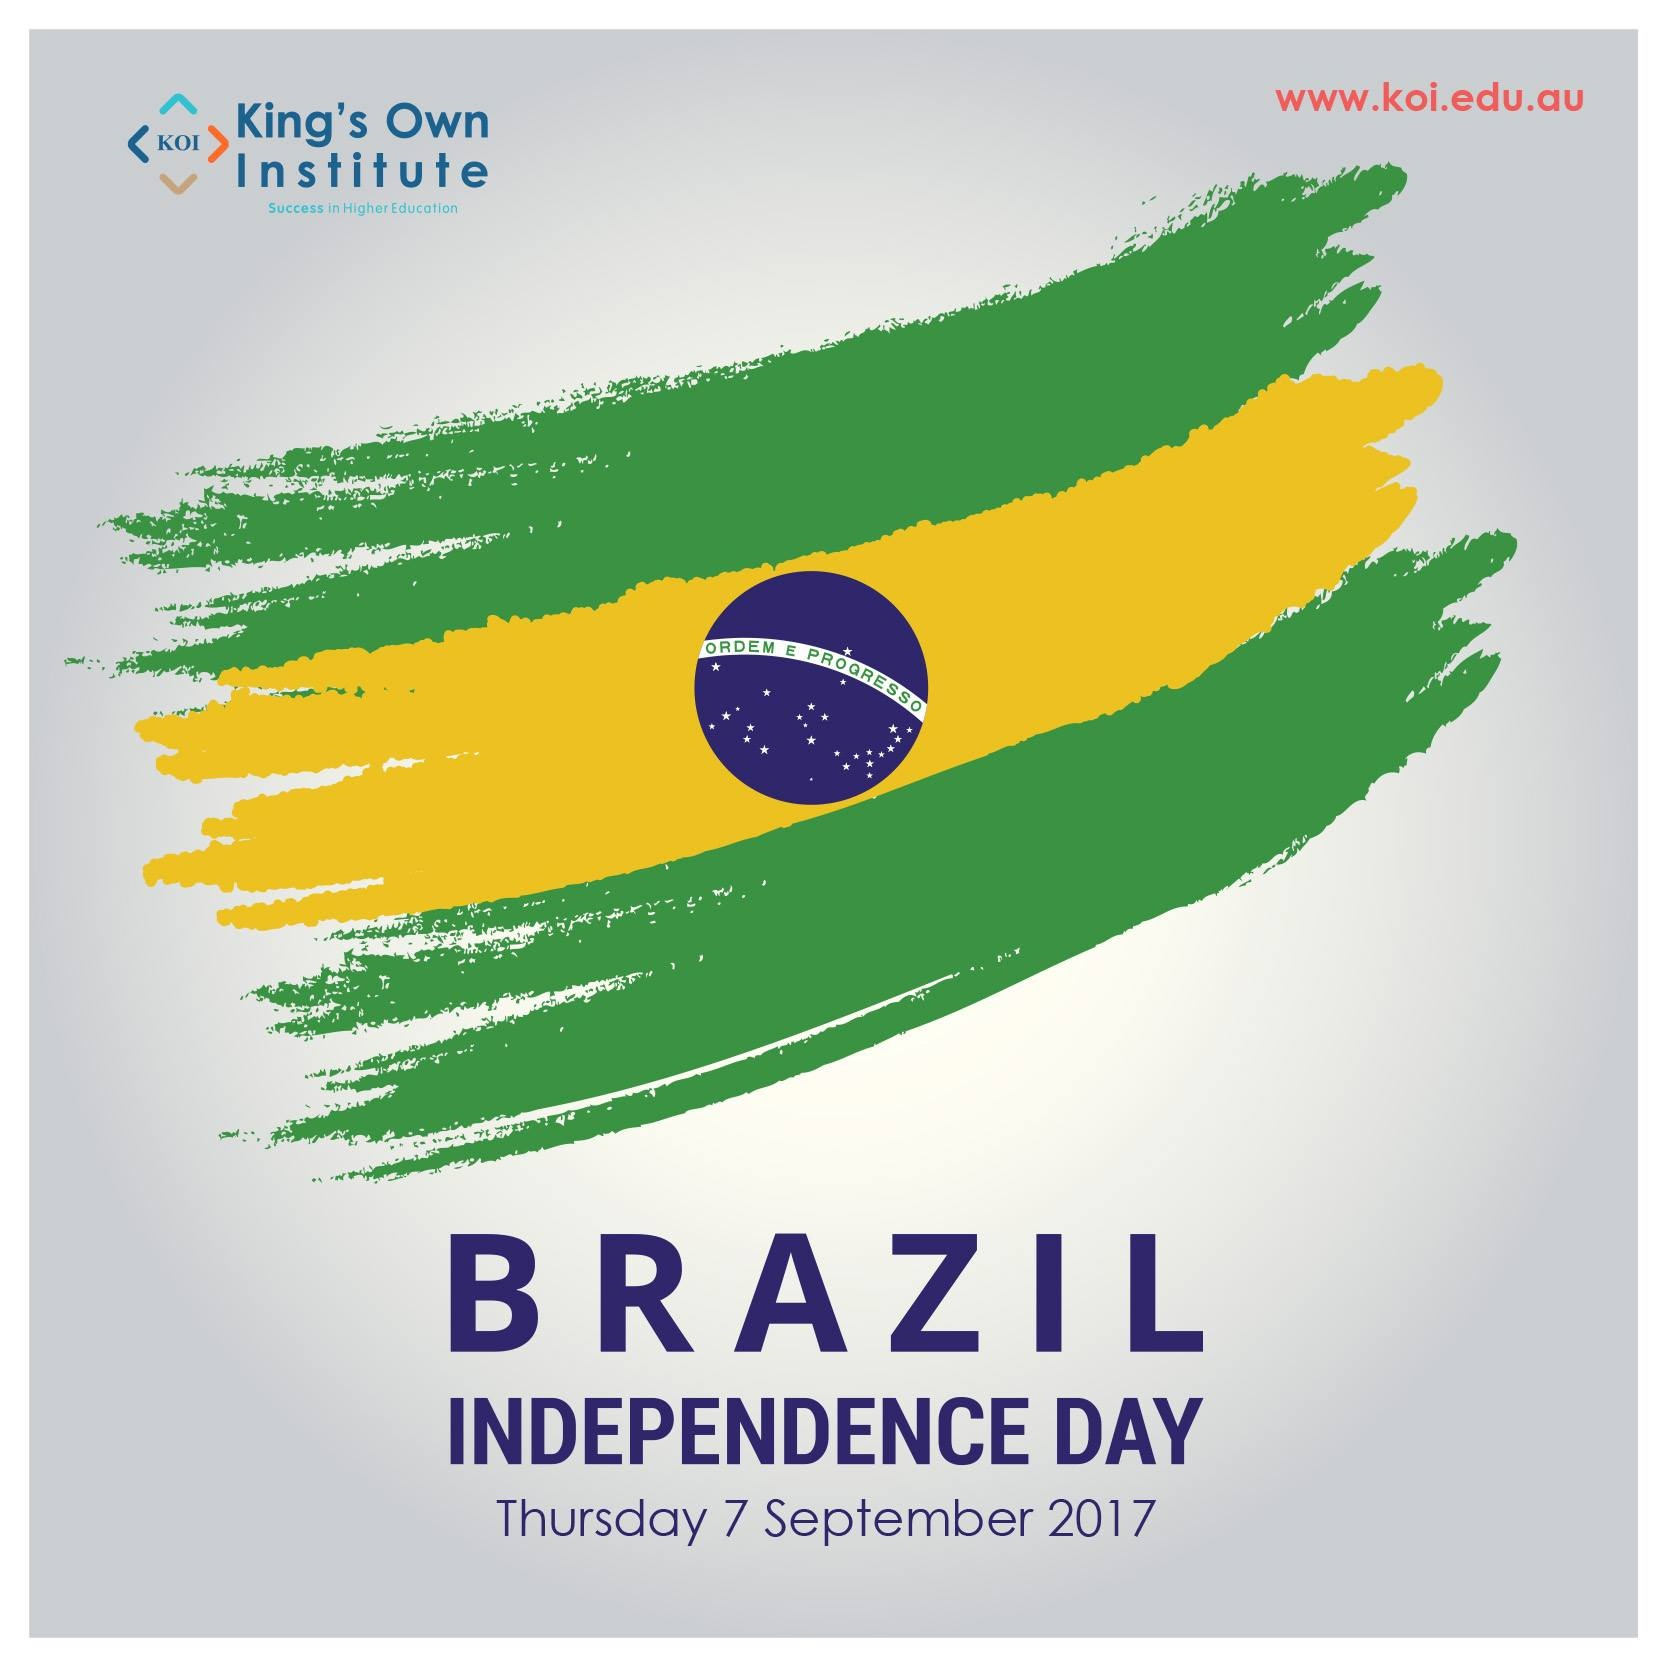 essay on brazil independence Brazil - independence: brazil entered nationhood with considerably less strife and bloodshed than did the spanish-speaking nations of the new world however, the transition was not entirely peaceful.